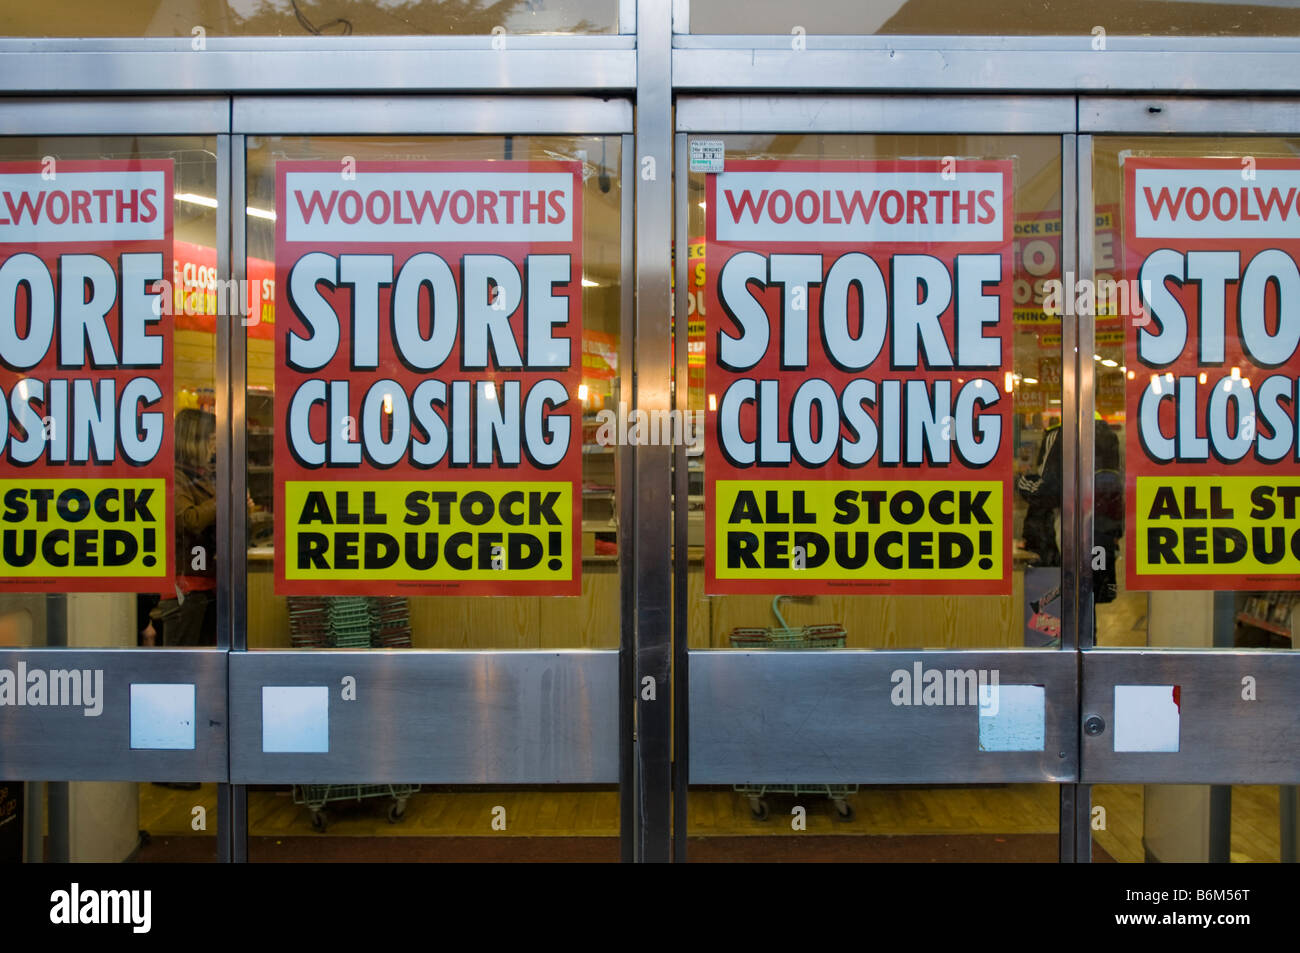 Woolworth Sign Stock Photos & Woolworth Sign Stock Images. November Signs. Perforated Bowel Signs. Functioning Alcoholic Signs. Flashing Lights Signs. Brown Neck Signs. Airport Delhi Signs. Cider Vinegar Signs. Slate House Signs Of Stroke